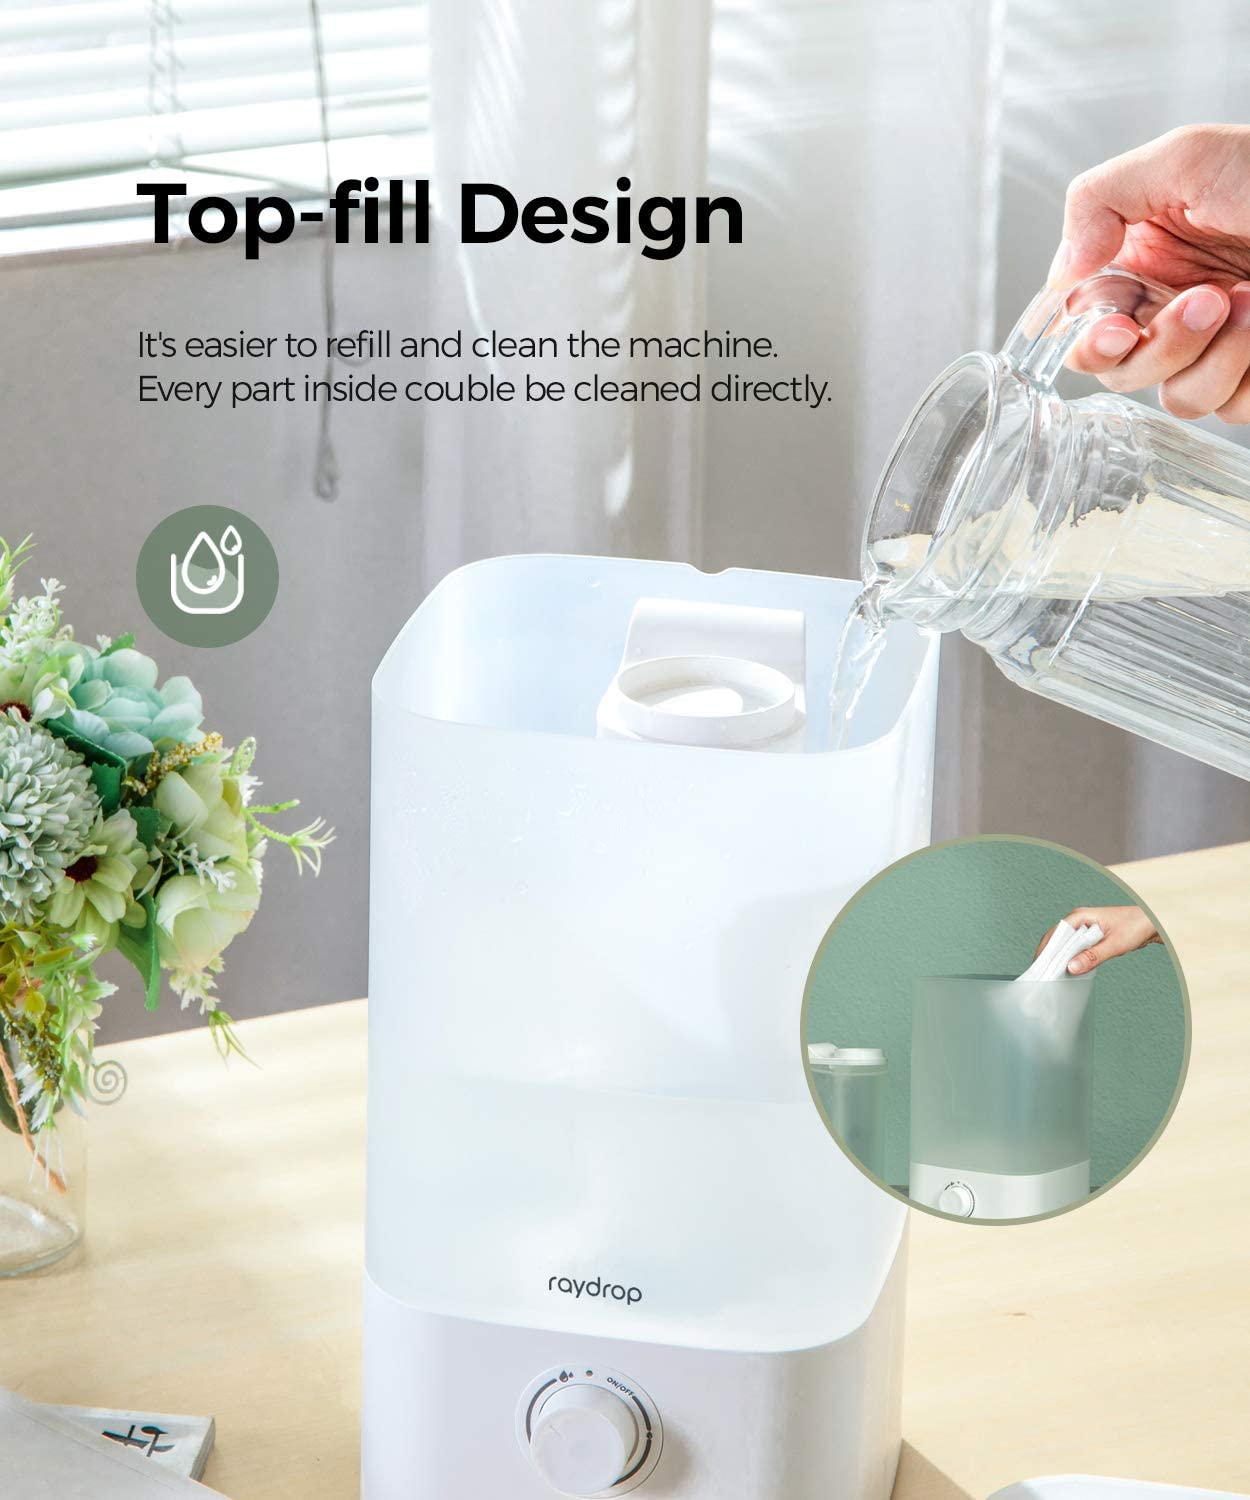 Home and Office White raydrop Cool Mist Humidifier Diffuser Top Fill Humidifier for Bedroom Baby Humidifier with Adjustable Mist Output Dial Knob 2.5L Essential Oil Diffuser Auto Shut Off